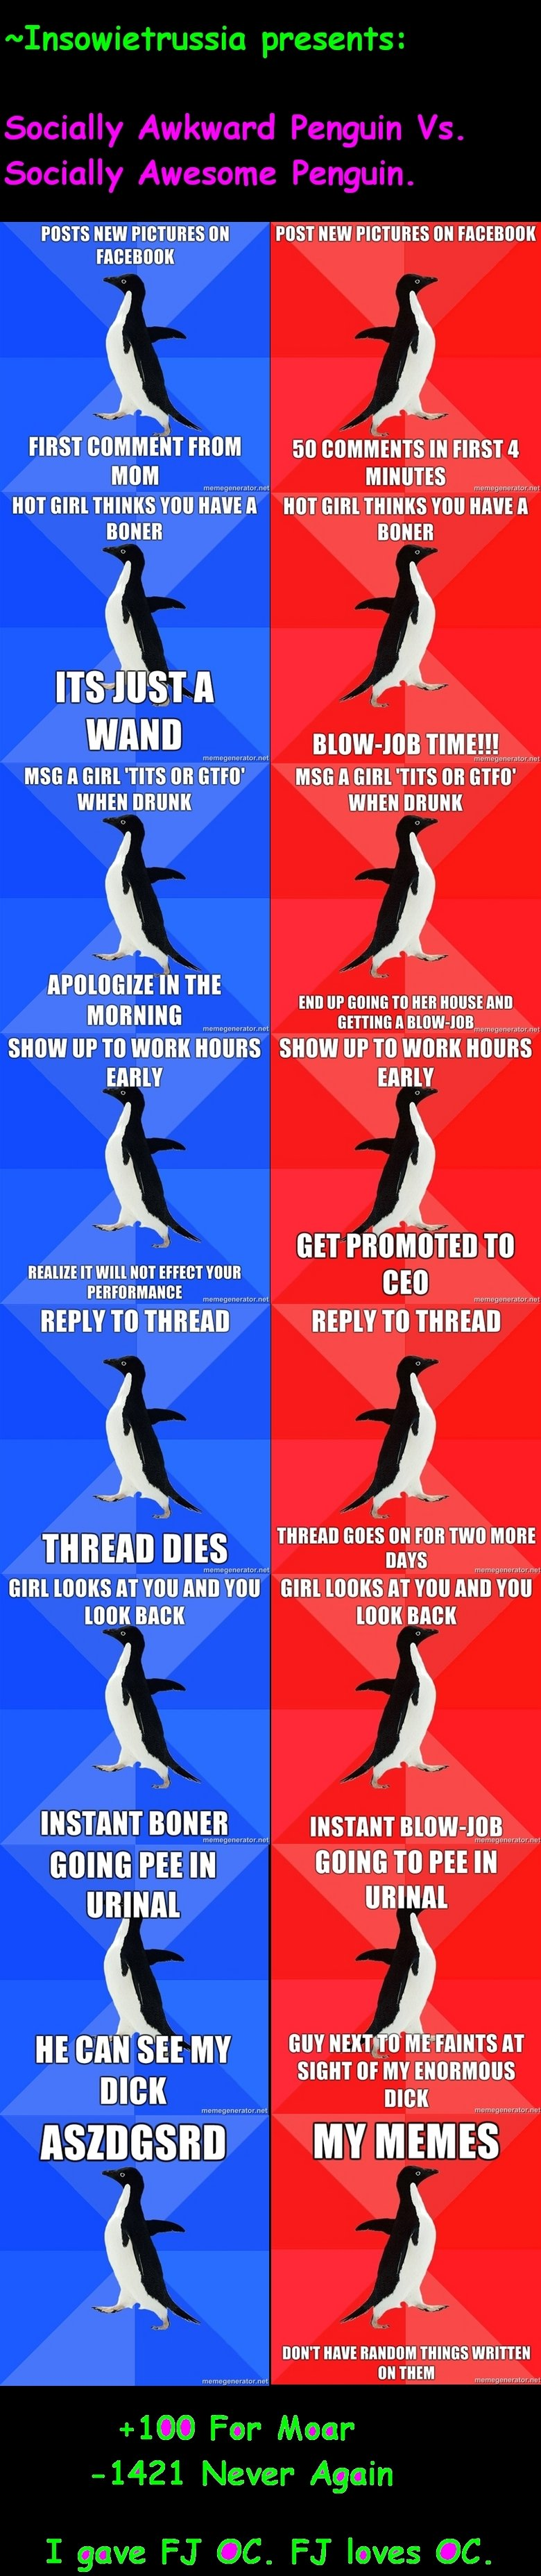 Socially Awkward vs. Awesome Penguin 1. For those of you who know, they were all deleted, I have no choice but to do it again so that the record of me making th